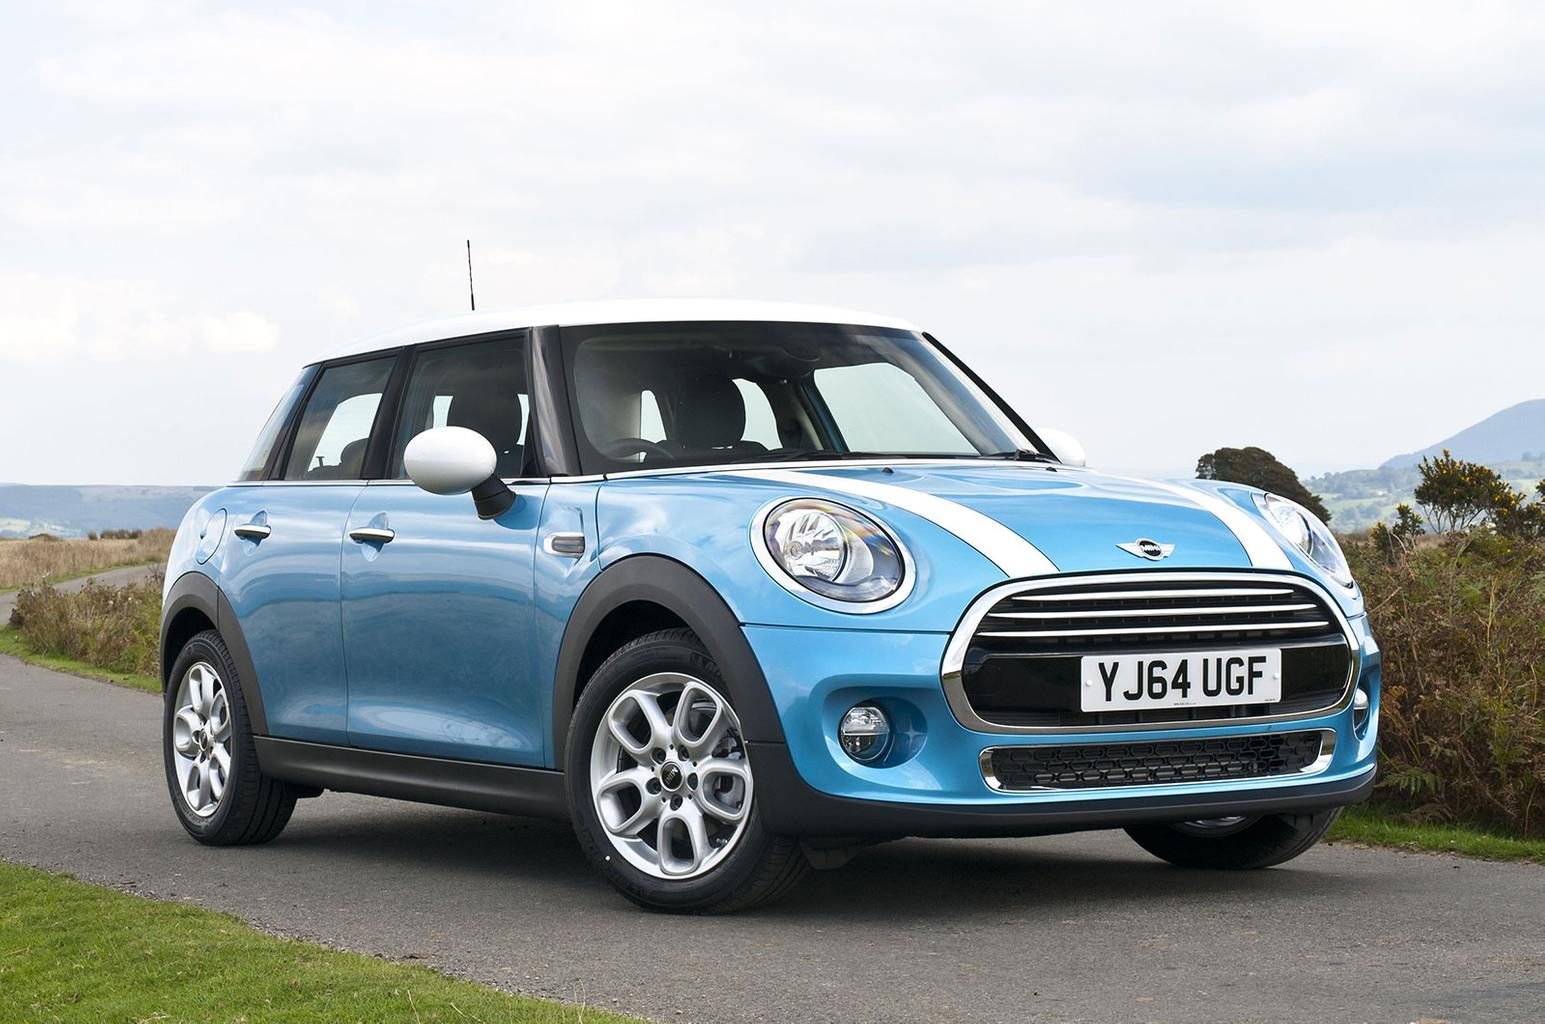 The UK's narrowest new cars revealed